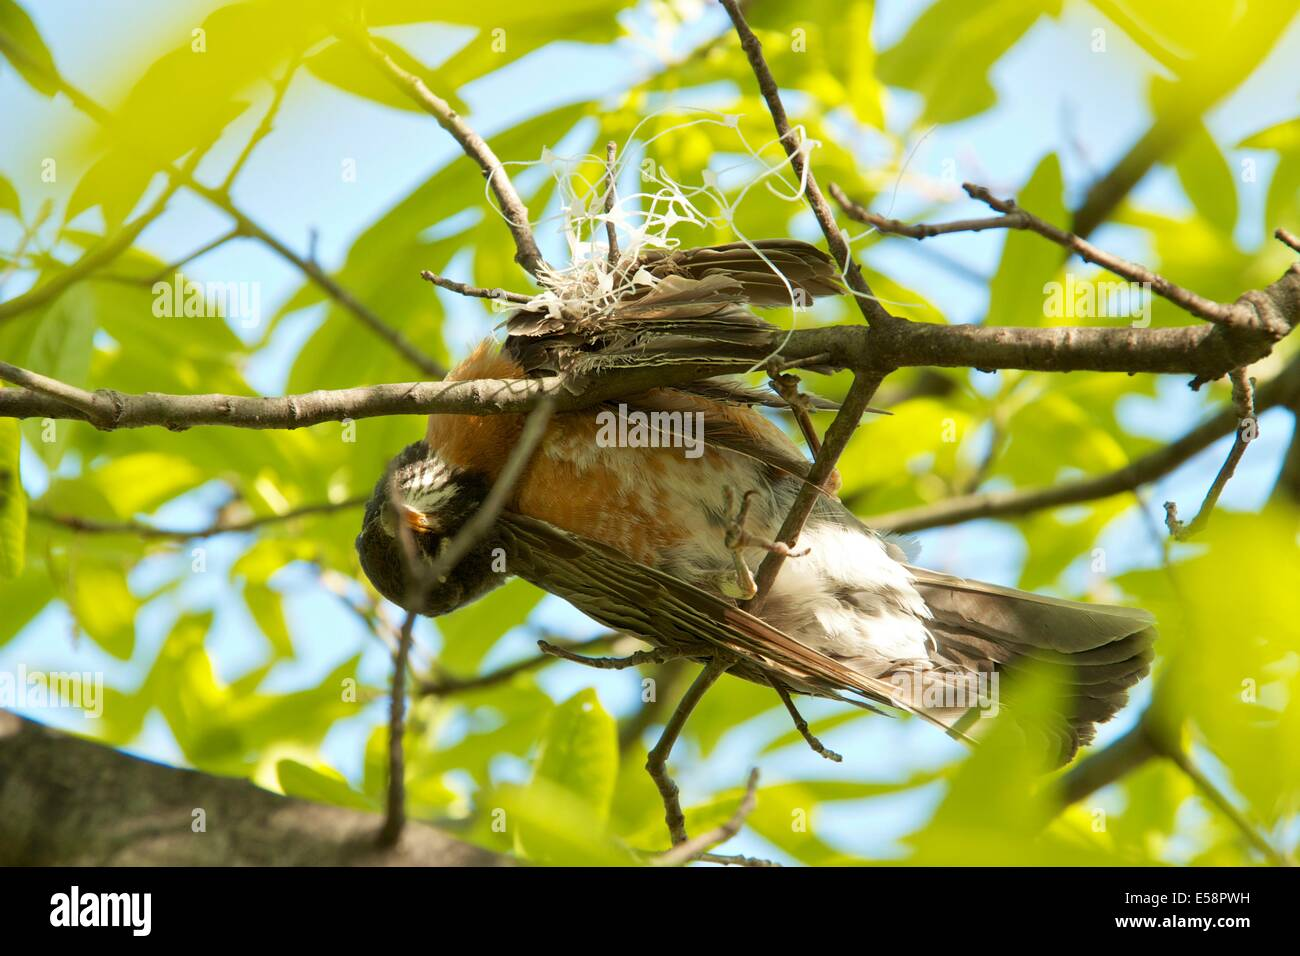 American robin killed from entanglement in plastic webbing. - Stock Image